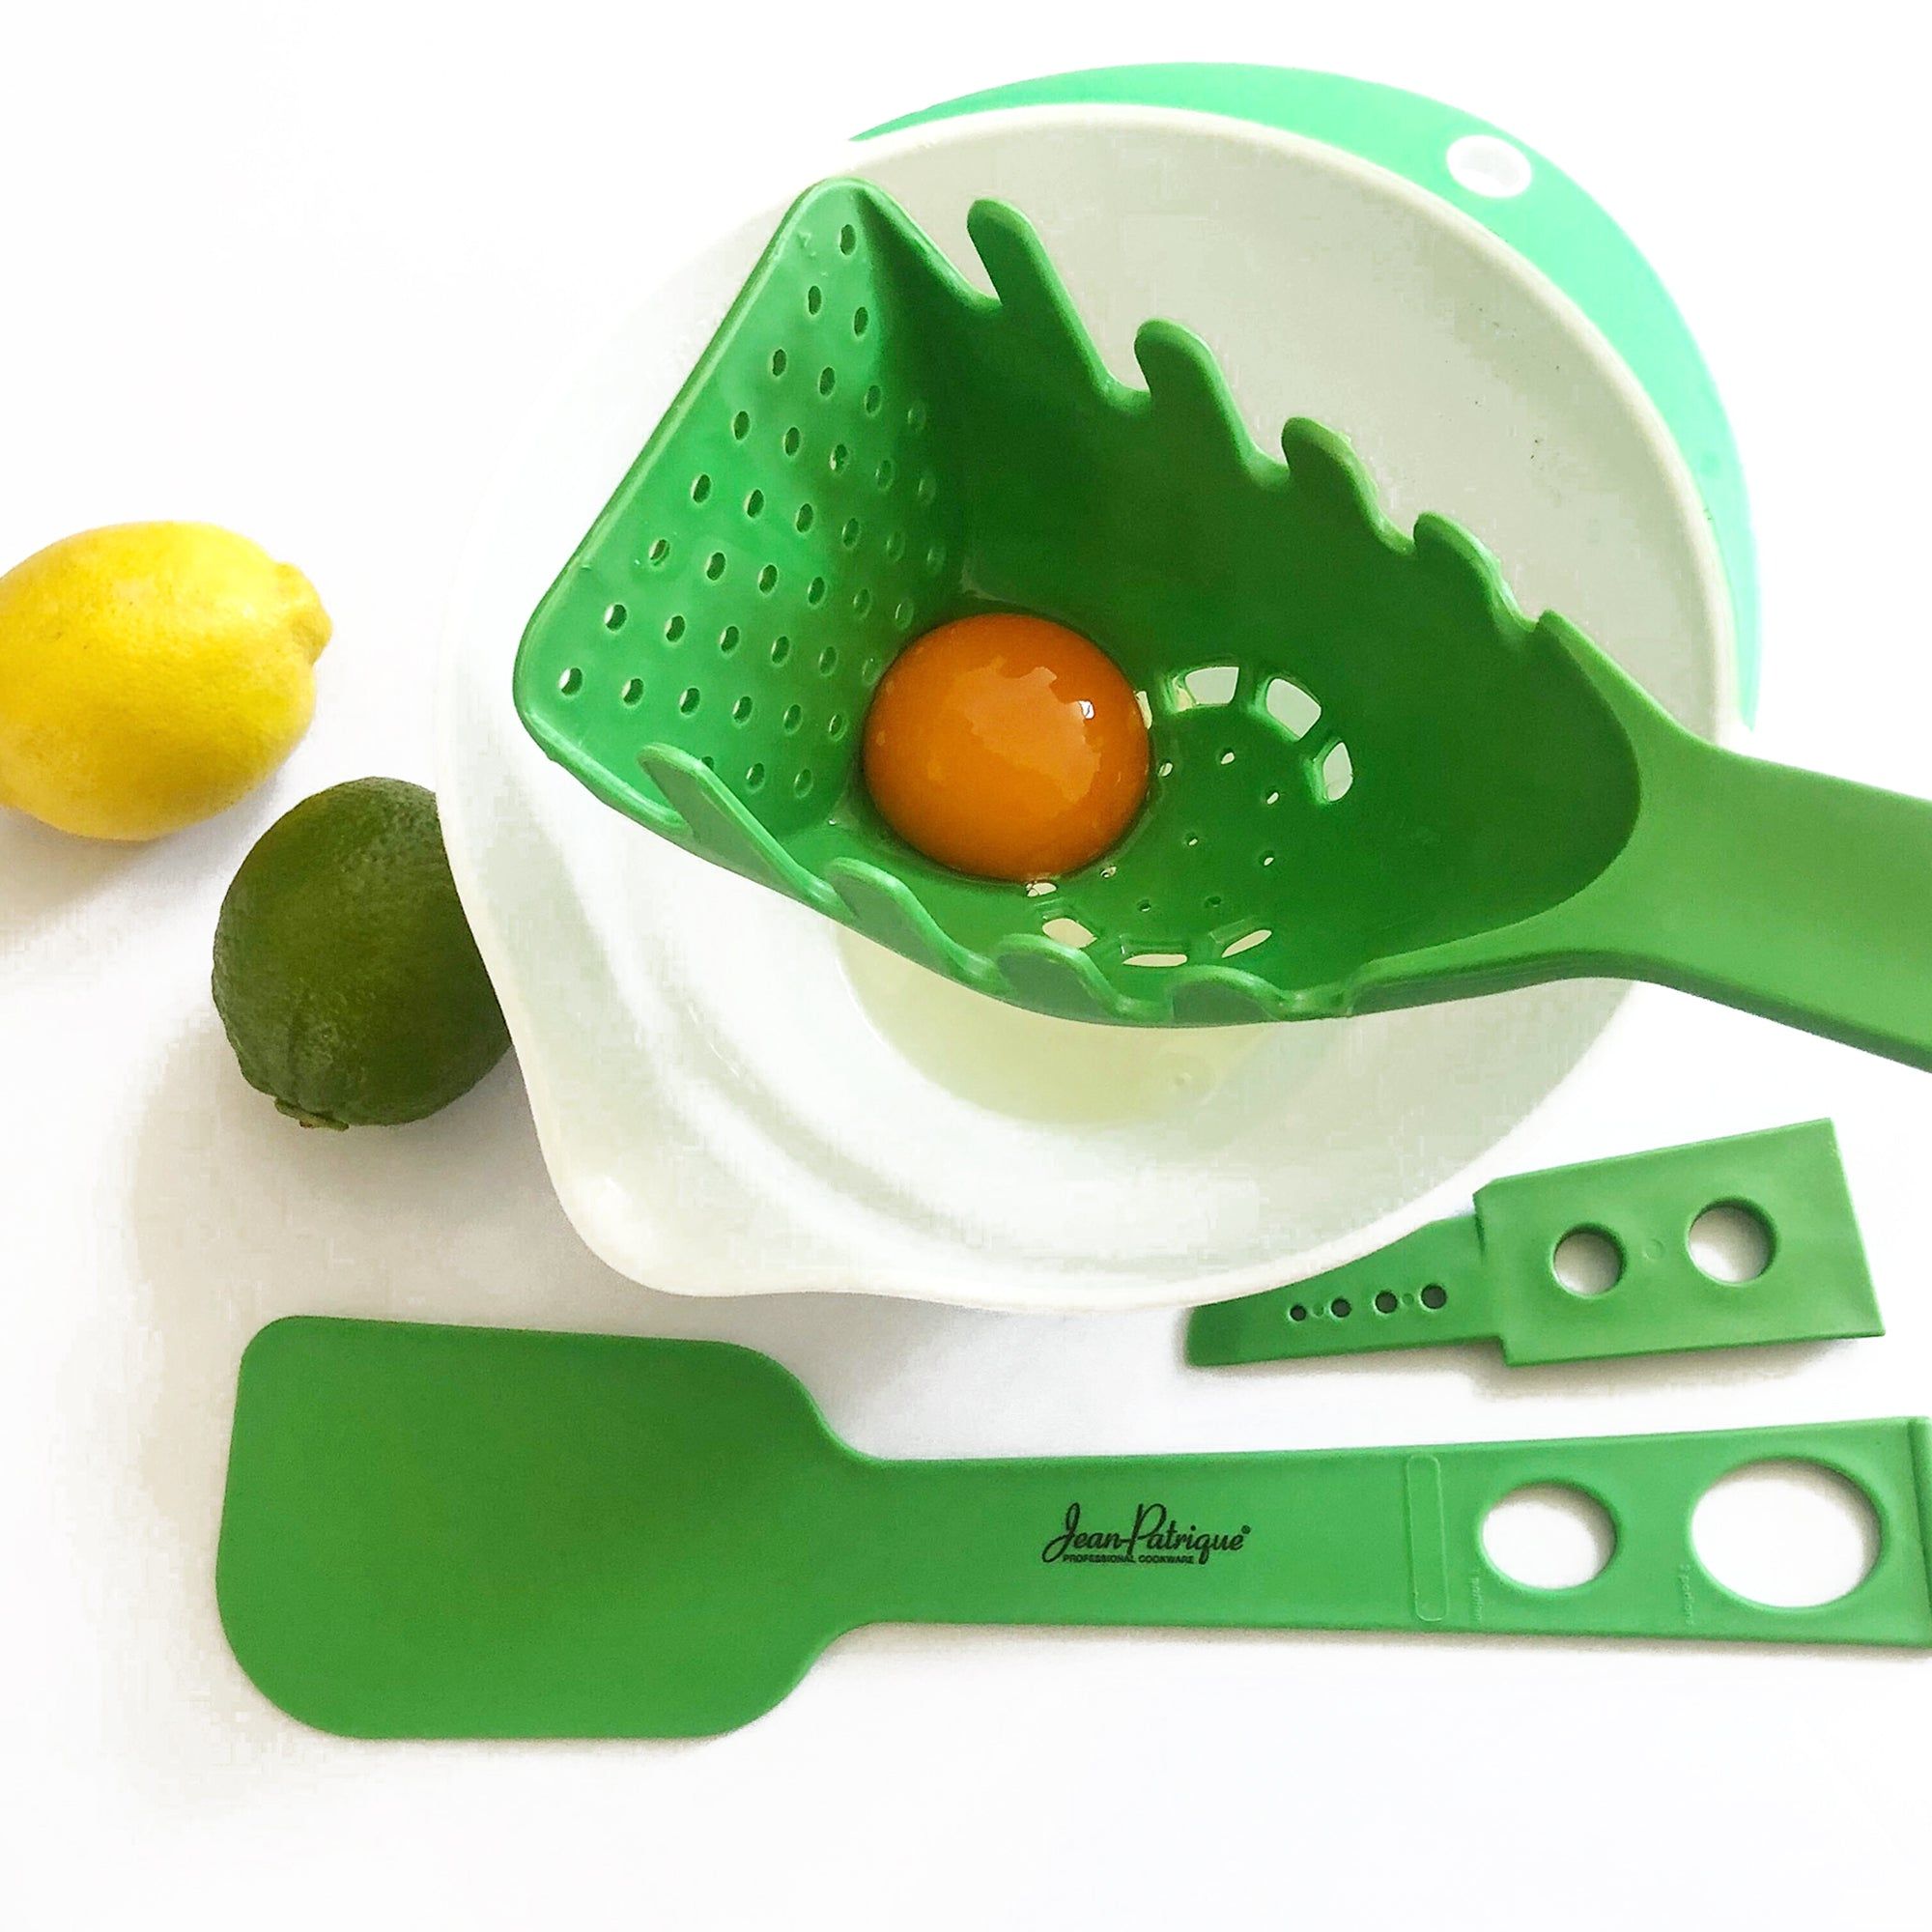 8 in 1 Strainer Ladle - Green